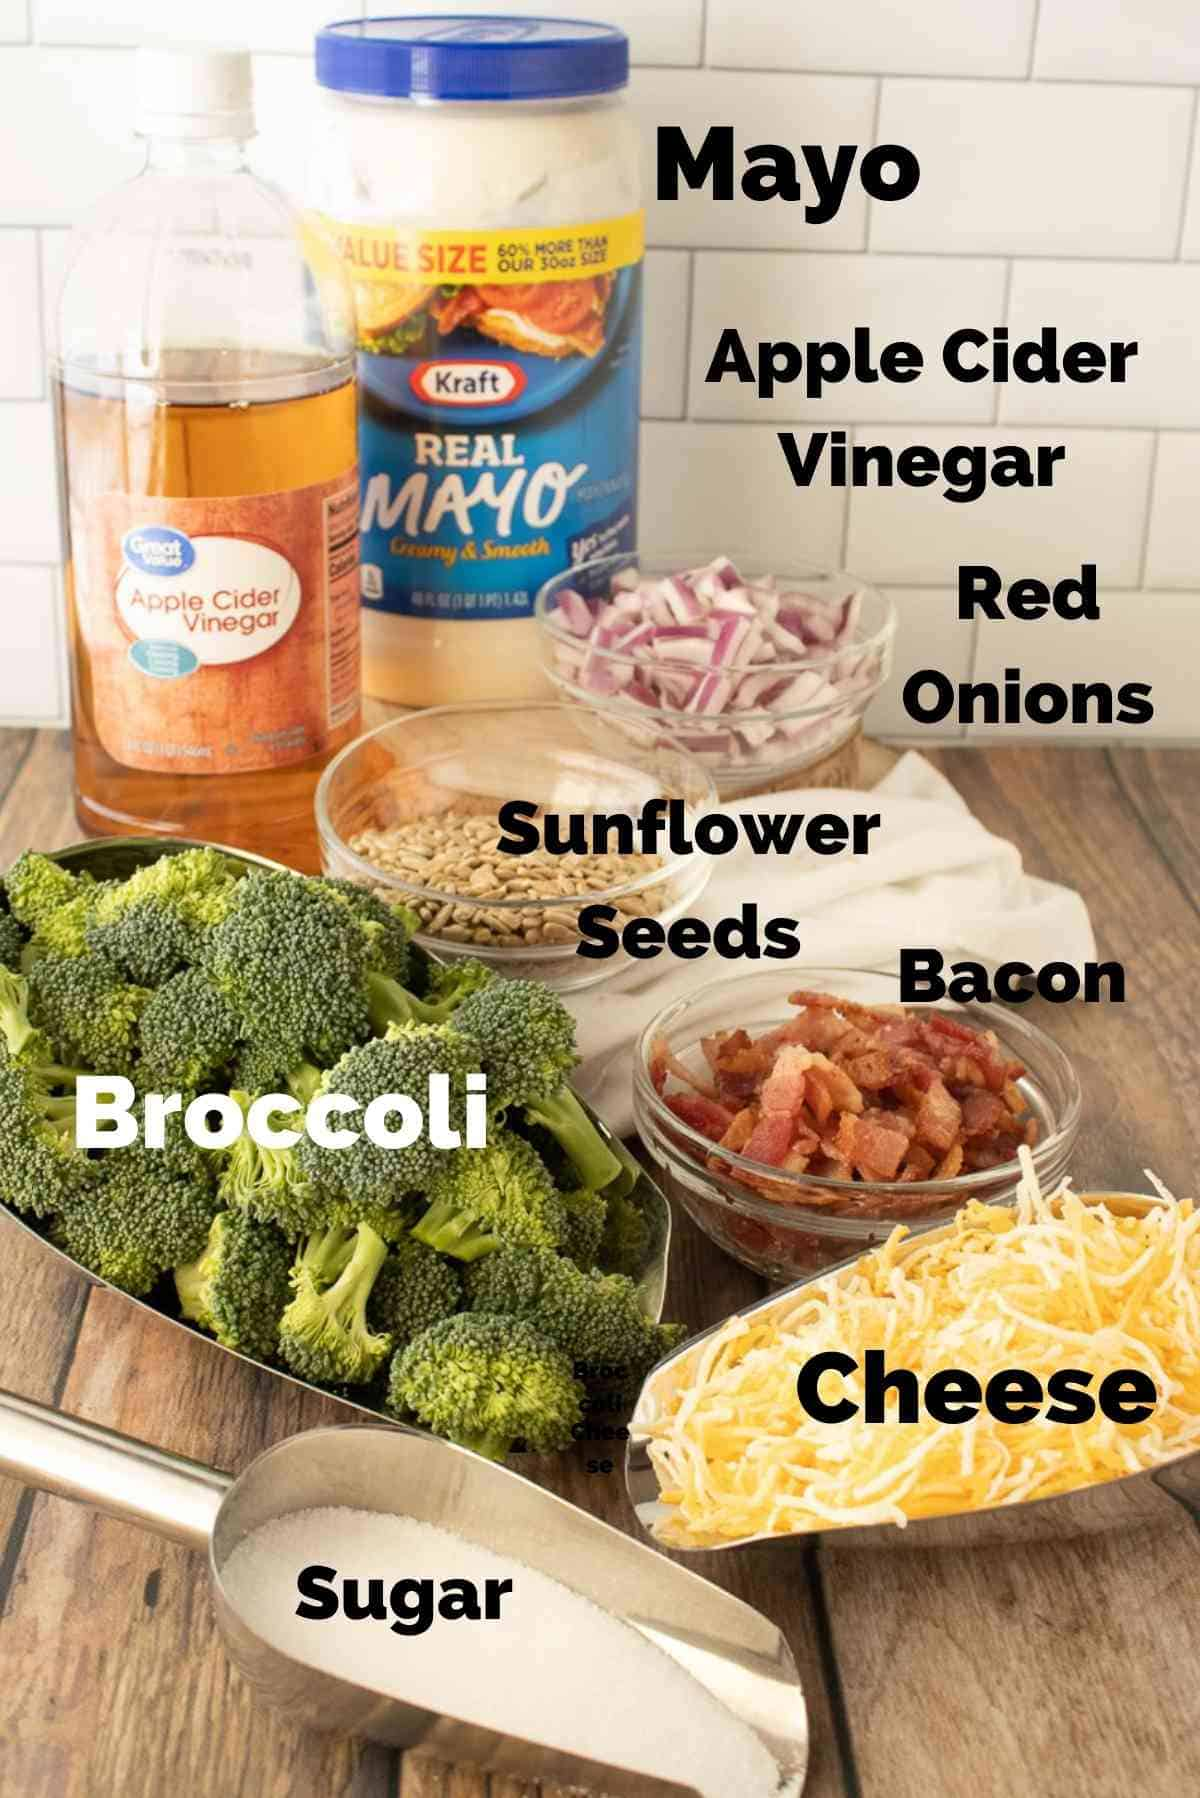 Ingredients for this broccoli salad